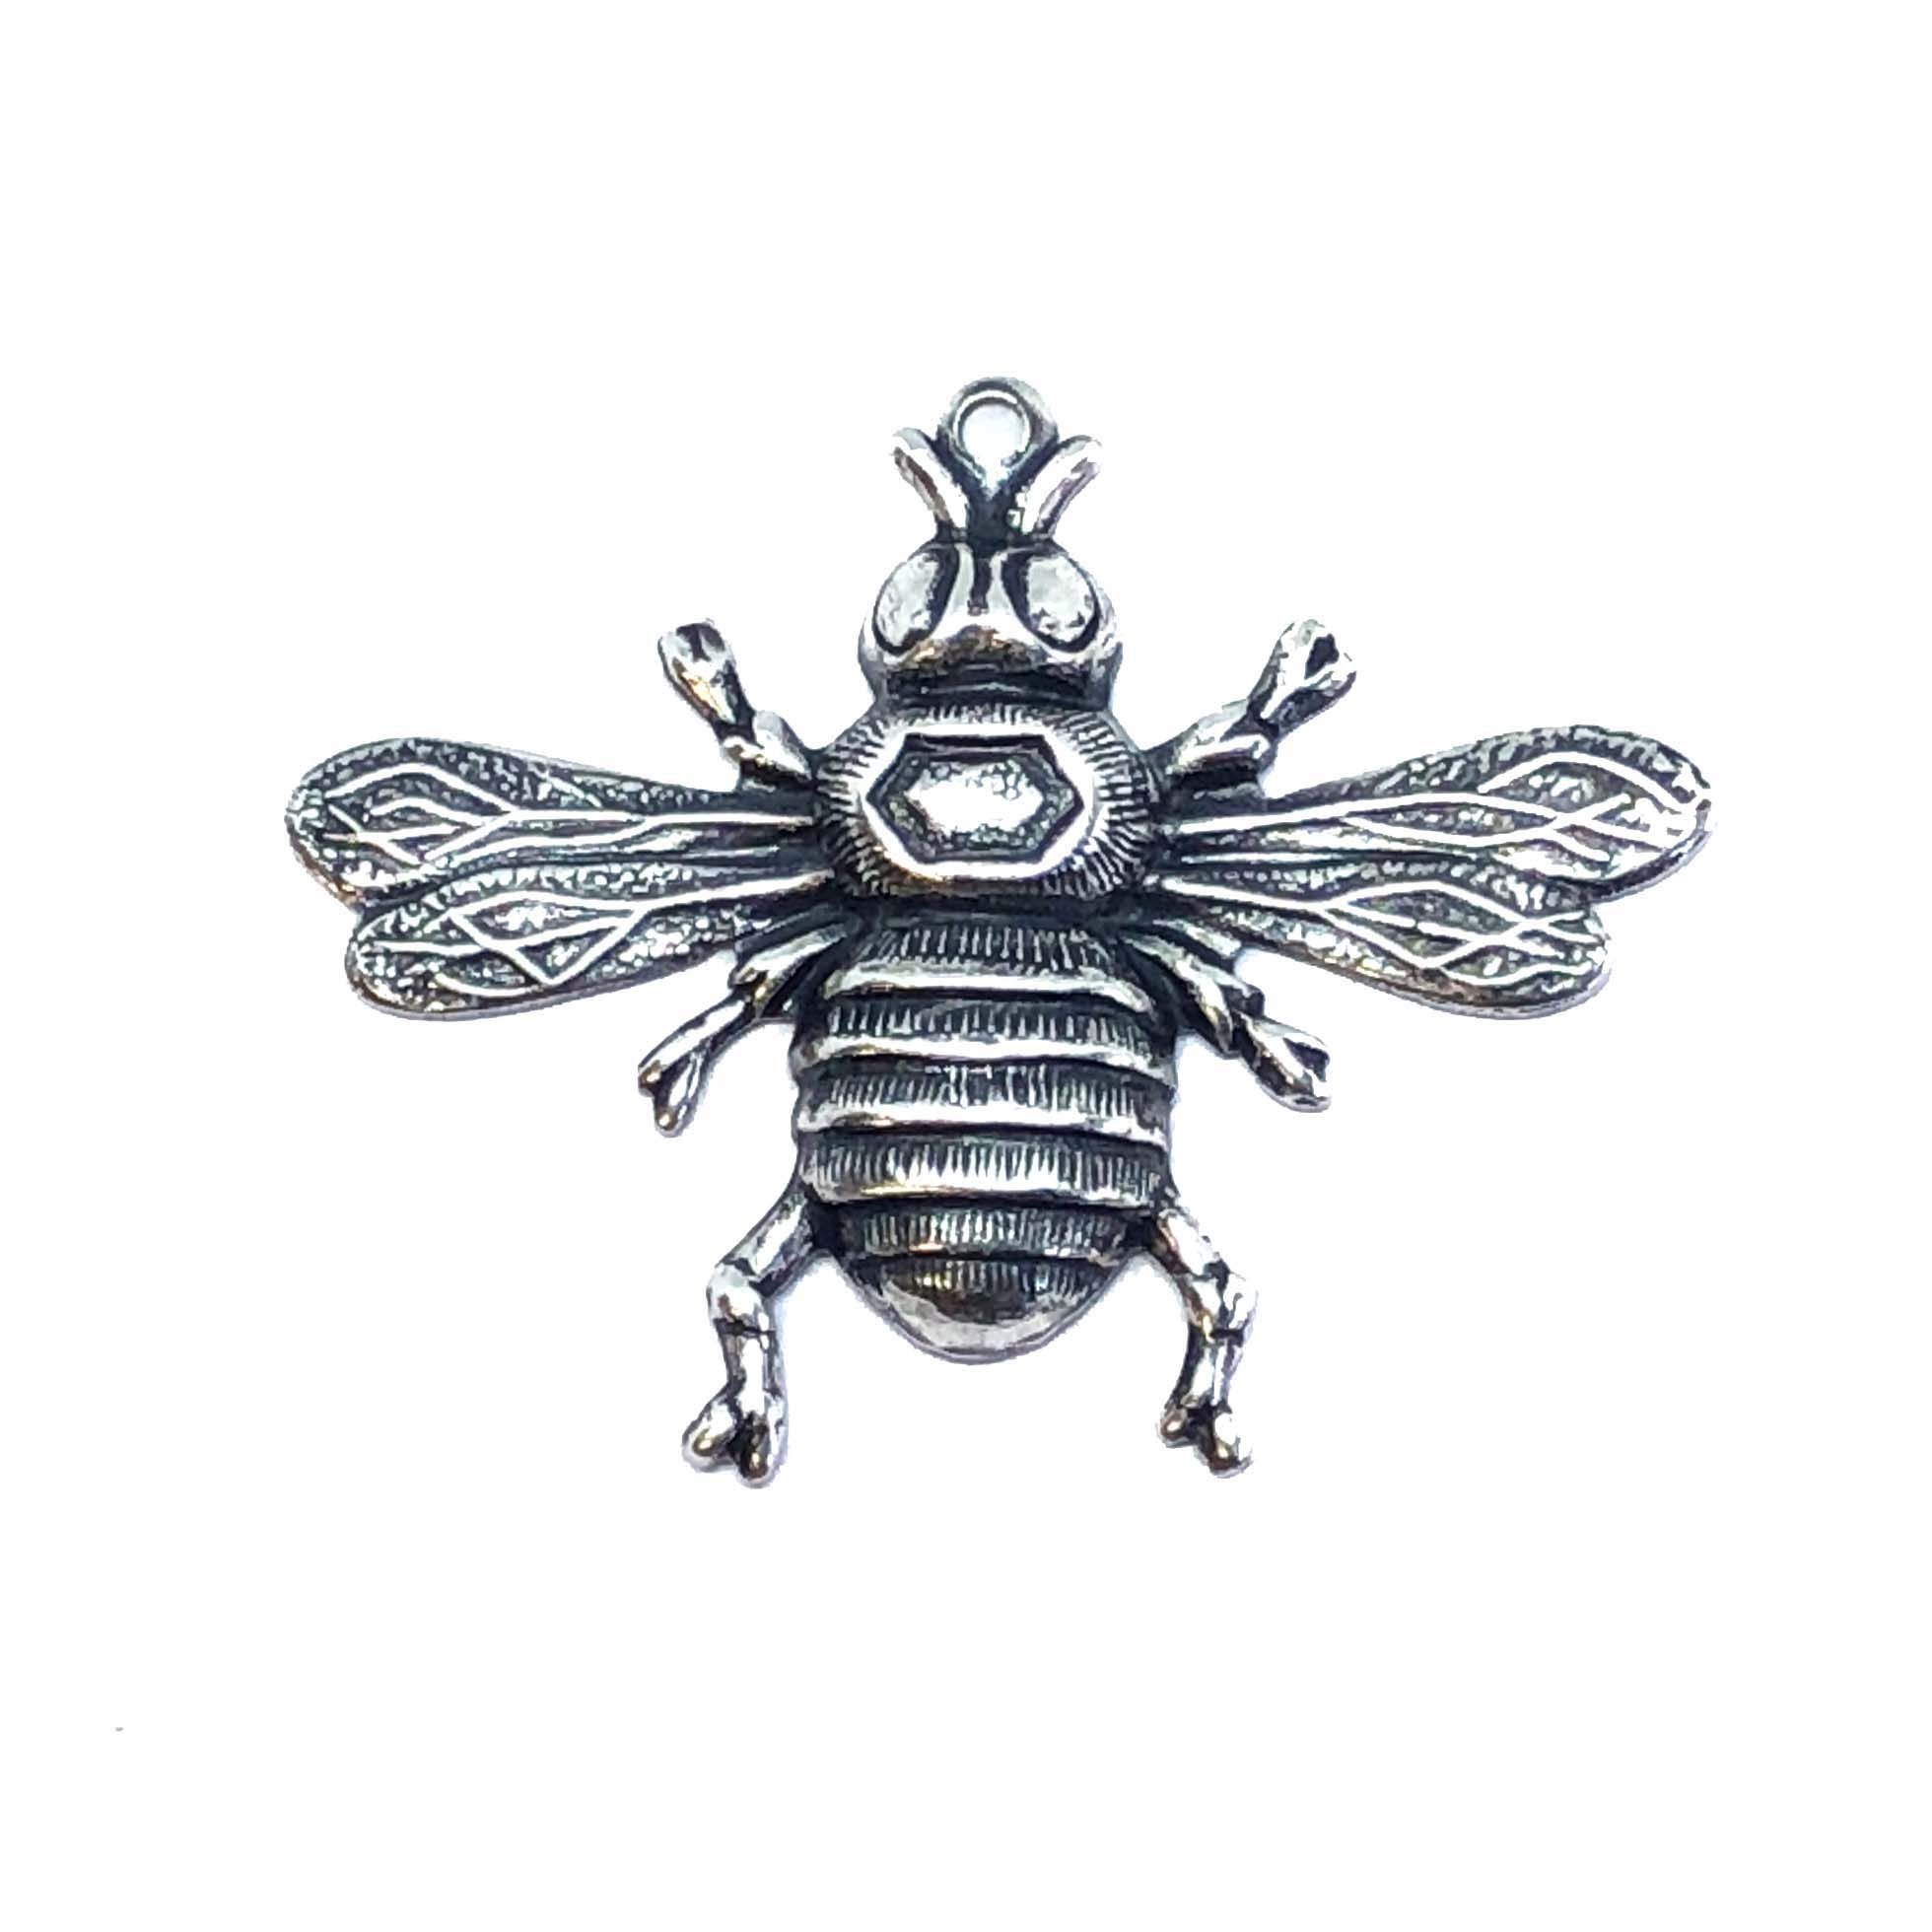 brass bees, bee stampings, silwar, 08199, antique silver, silverware silver plate, bee jewelry, jewelry making supplies, vintage jewelry supplies, insects, brass insects, US made, nickel free, bsueboutiques